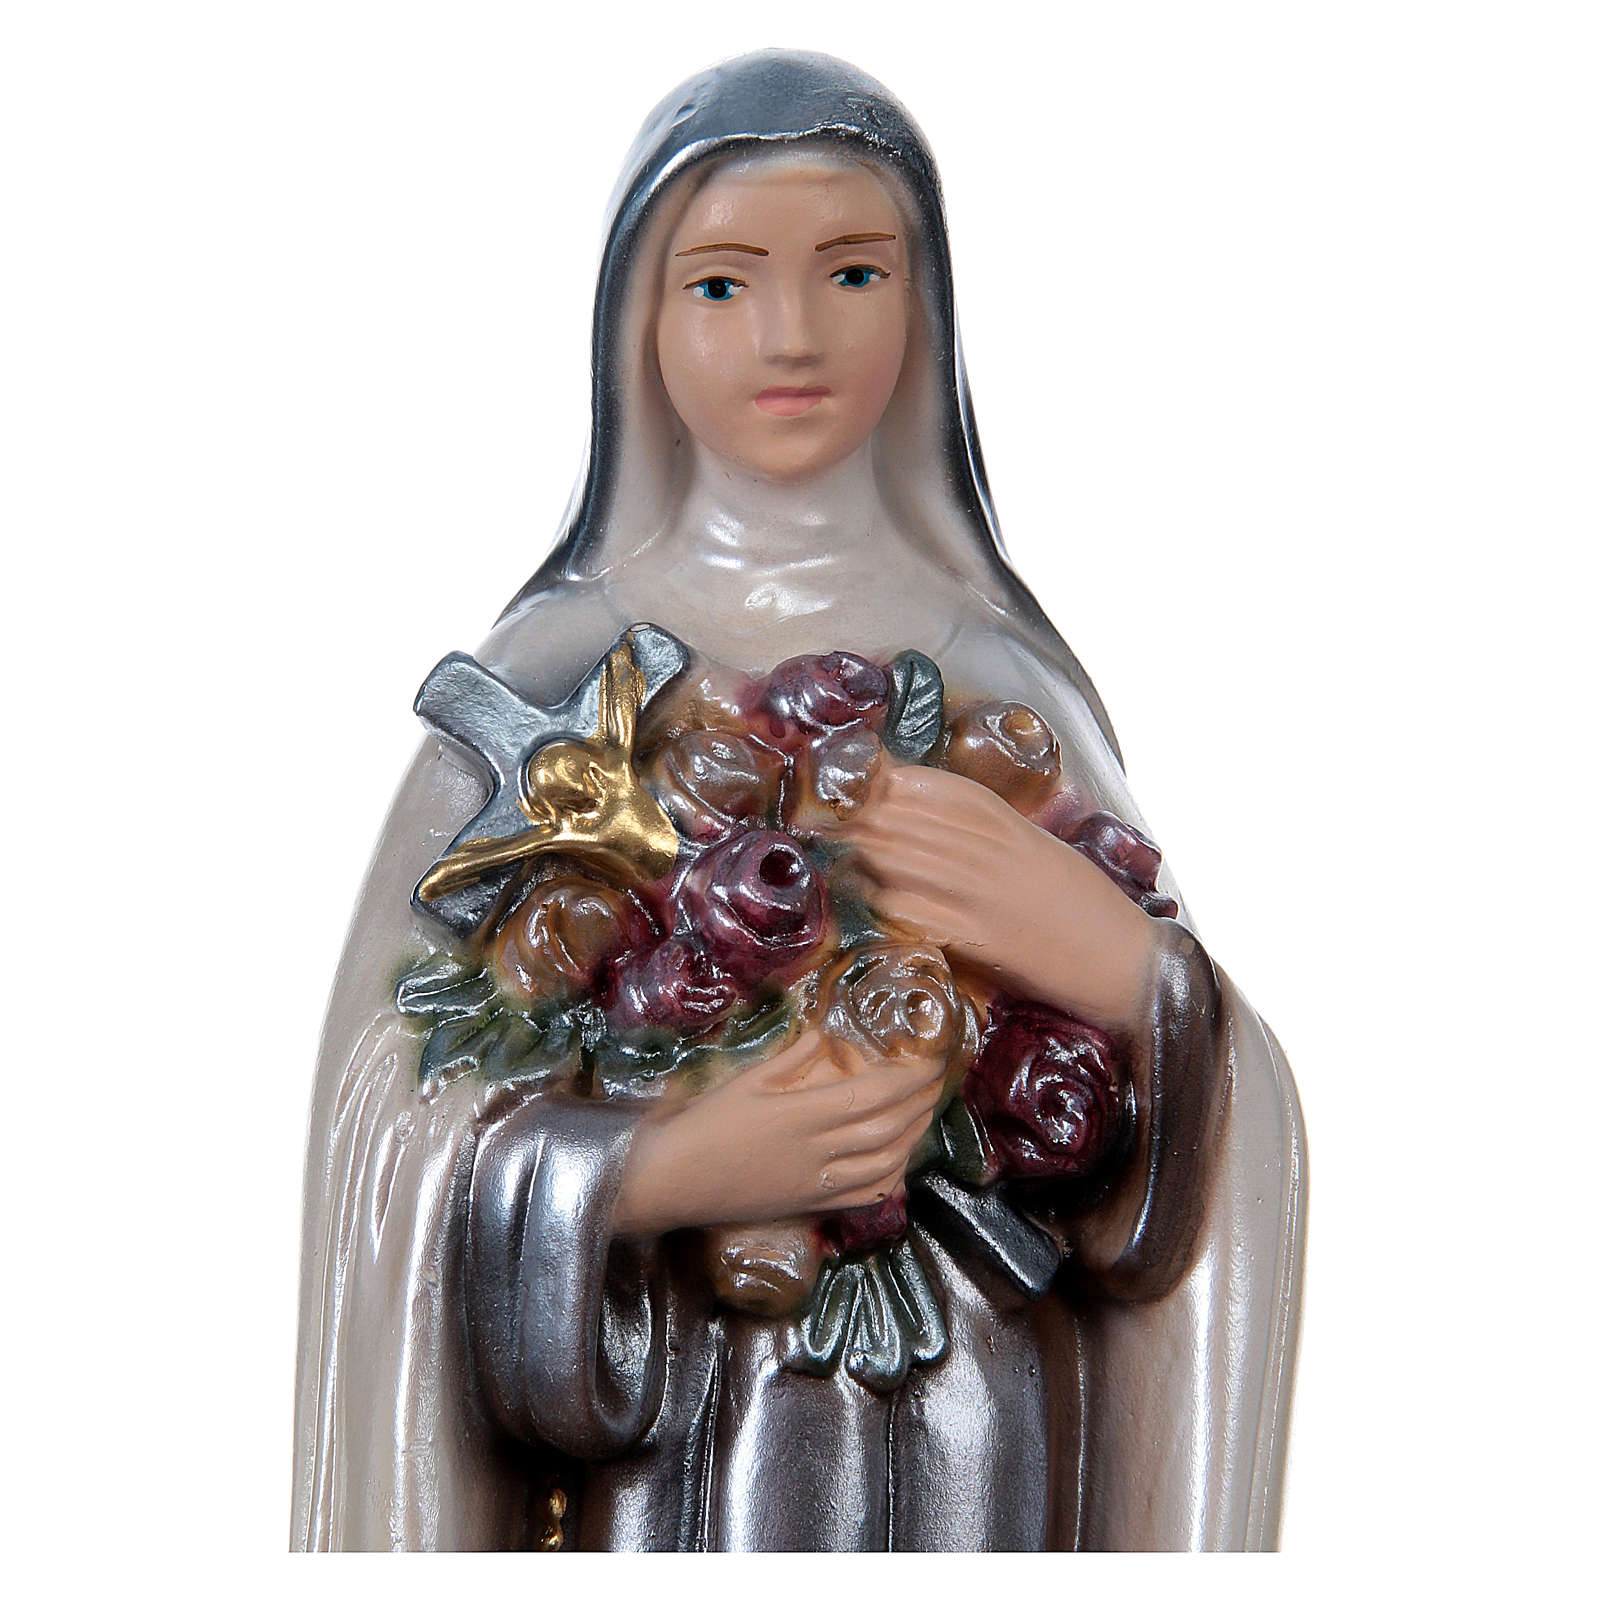 St Theresa 20 cm in mother-of-pearl plaster 4